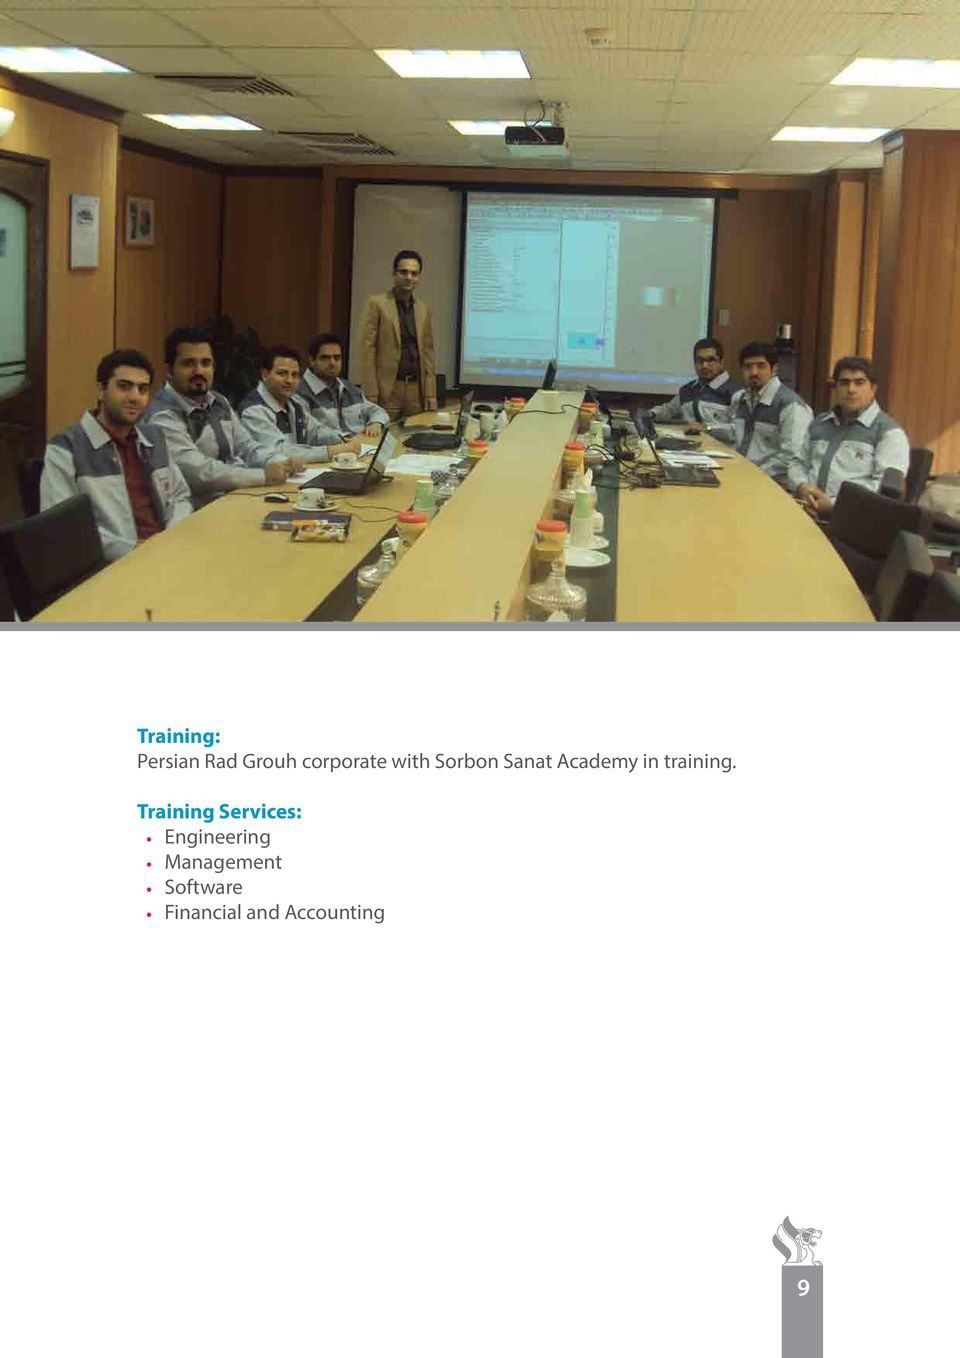 Training Services: Engineering